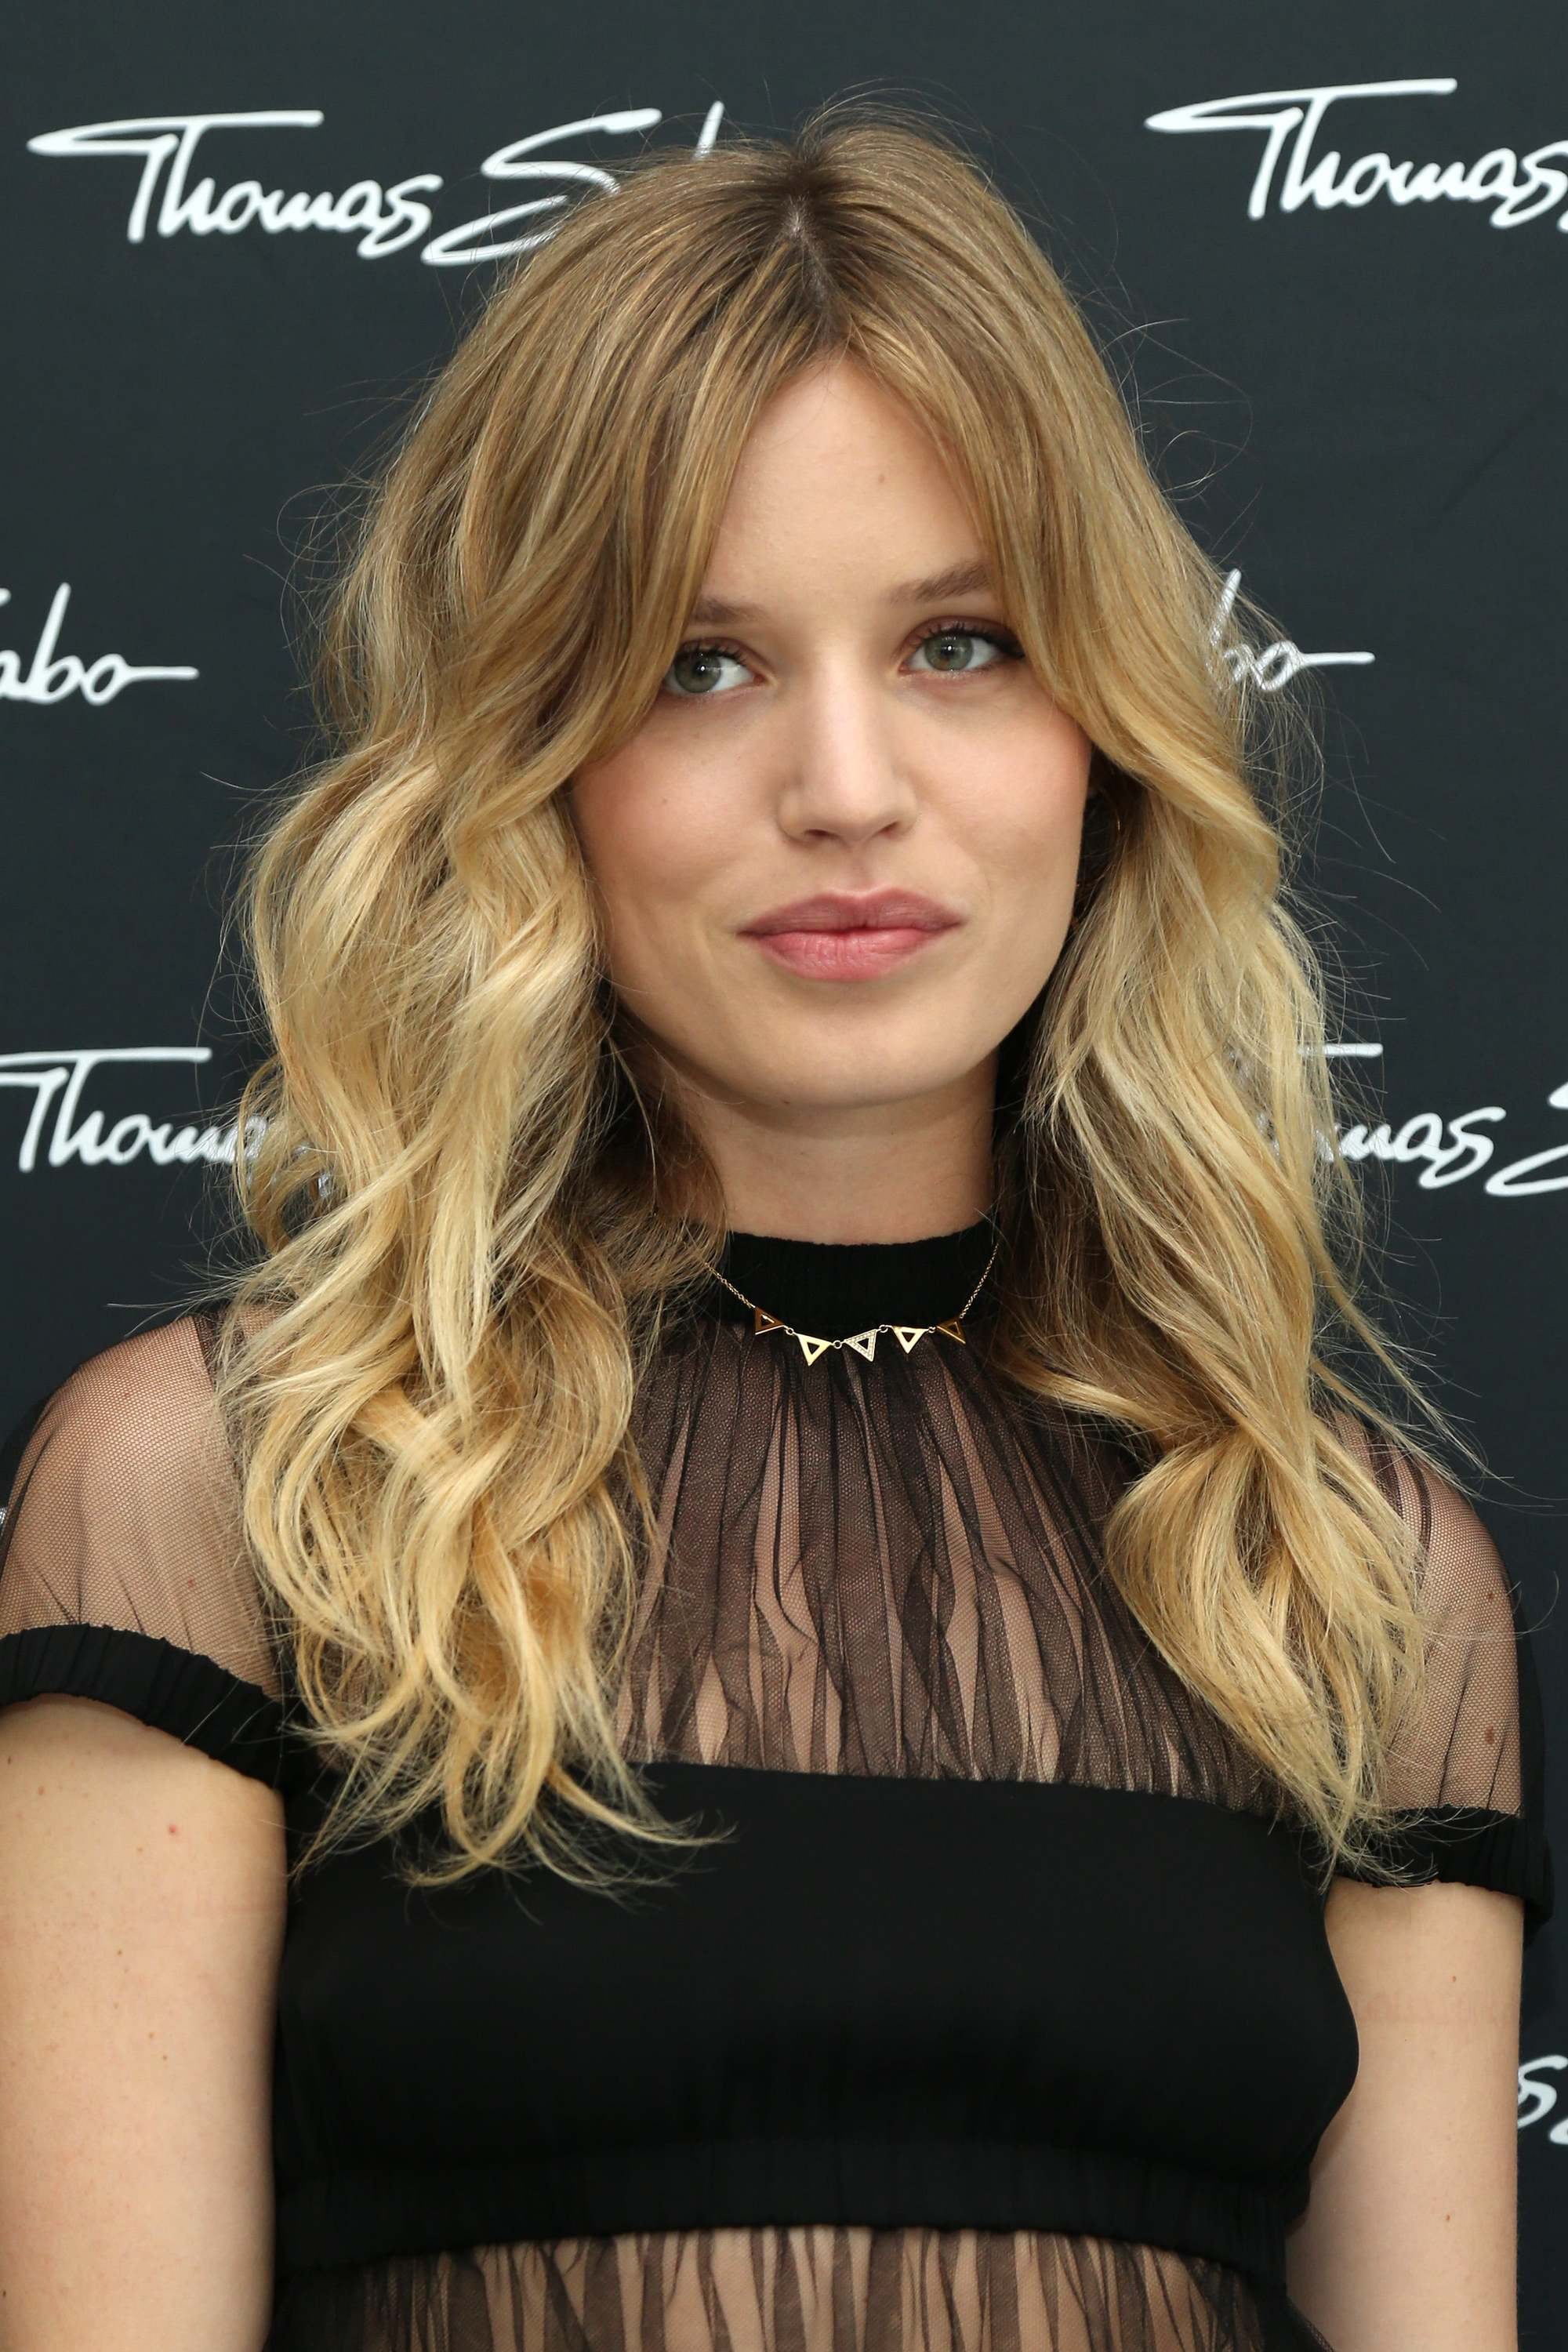 Brown hair with blonde highlights: Georgia May Jagger with sandy blonde curly hair with split Bardot bangs, wearing a black sheer lace top